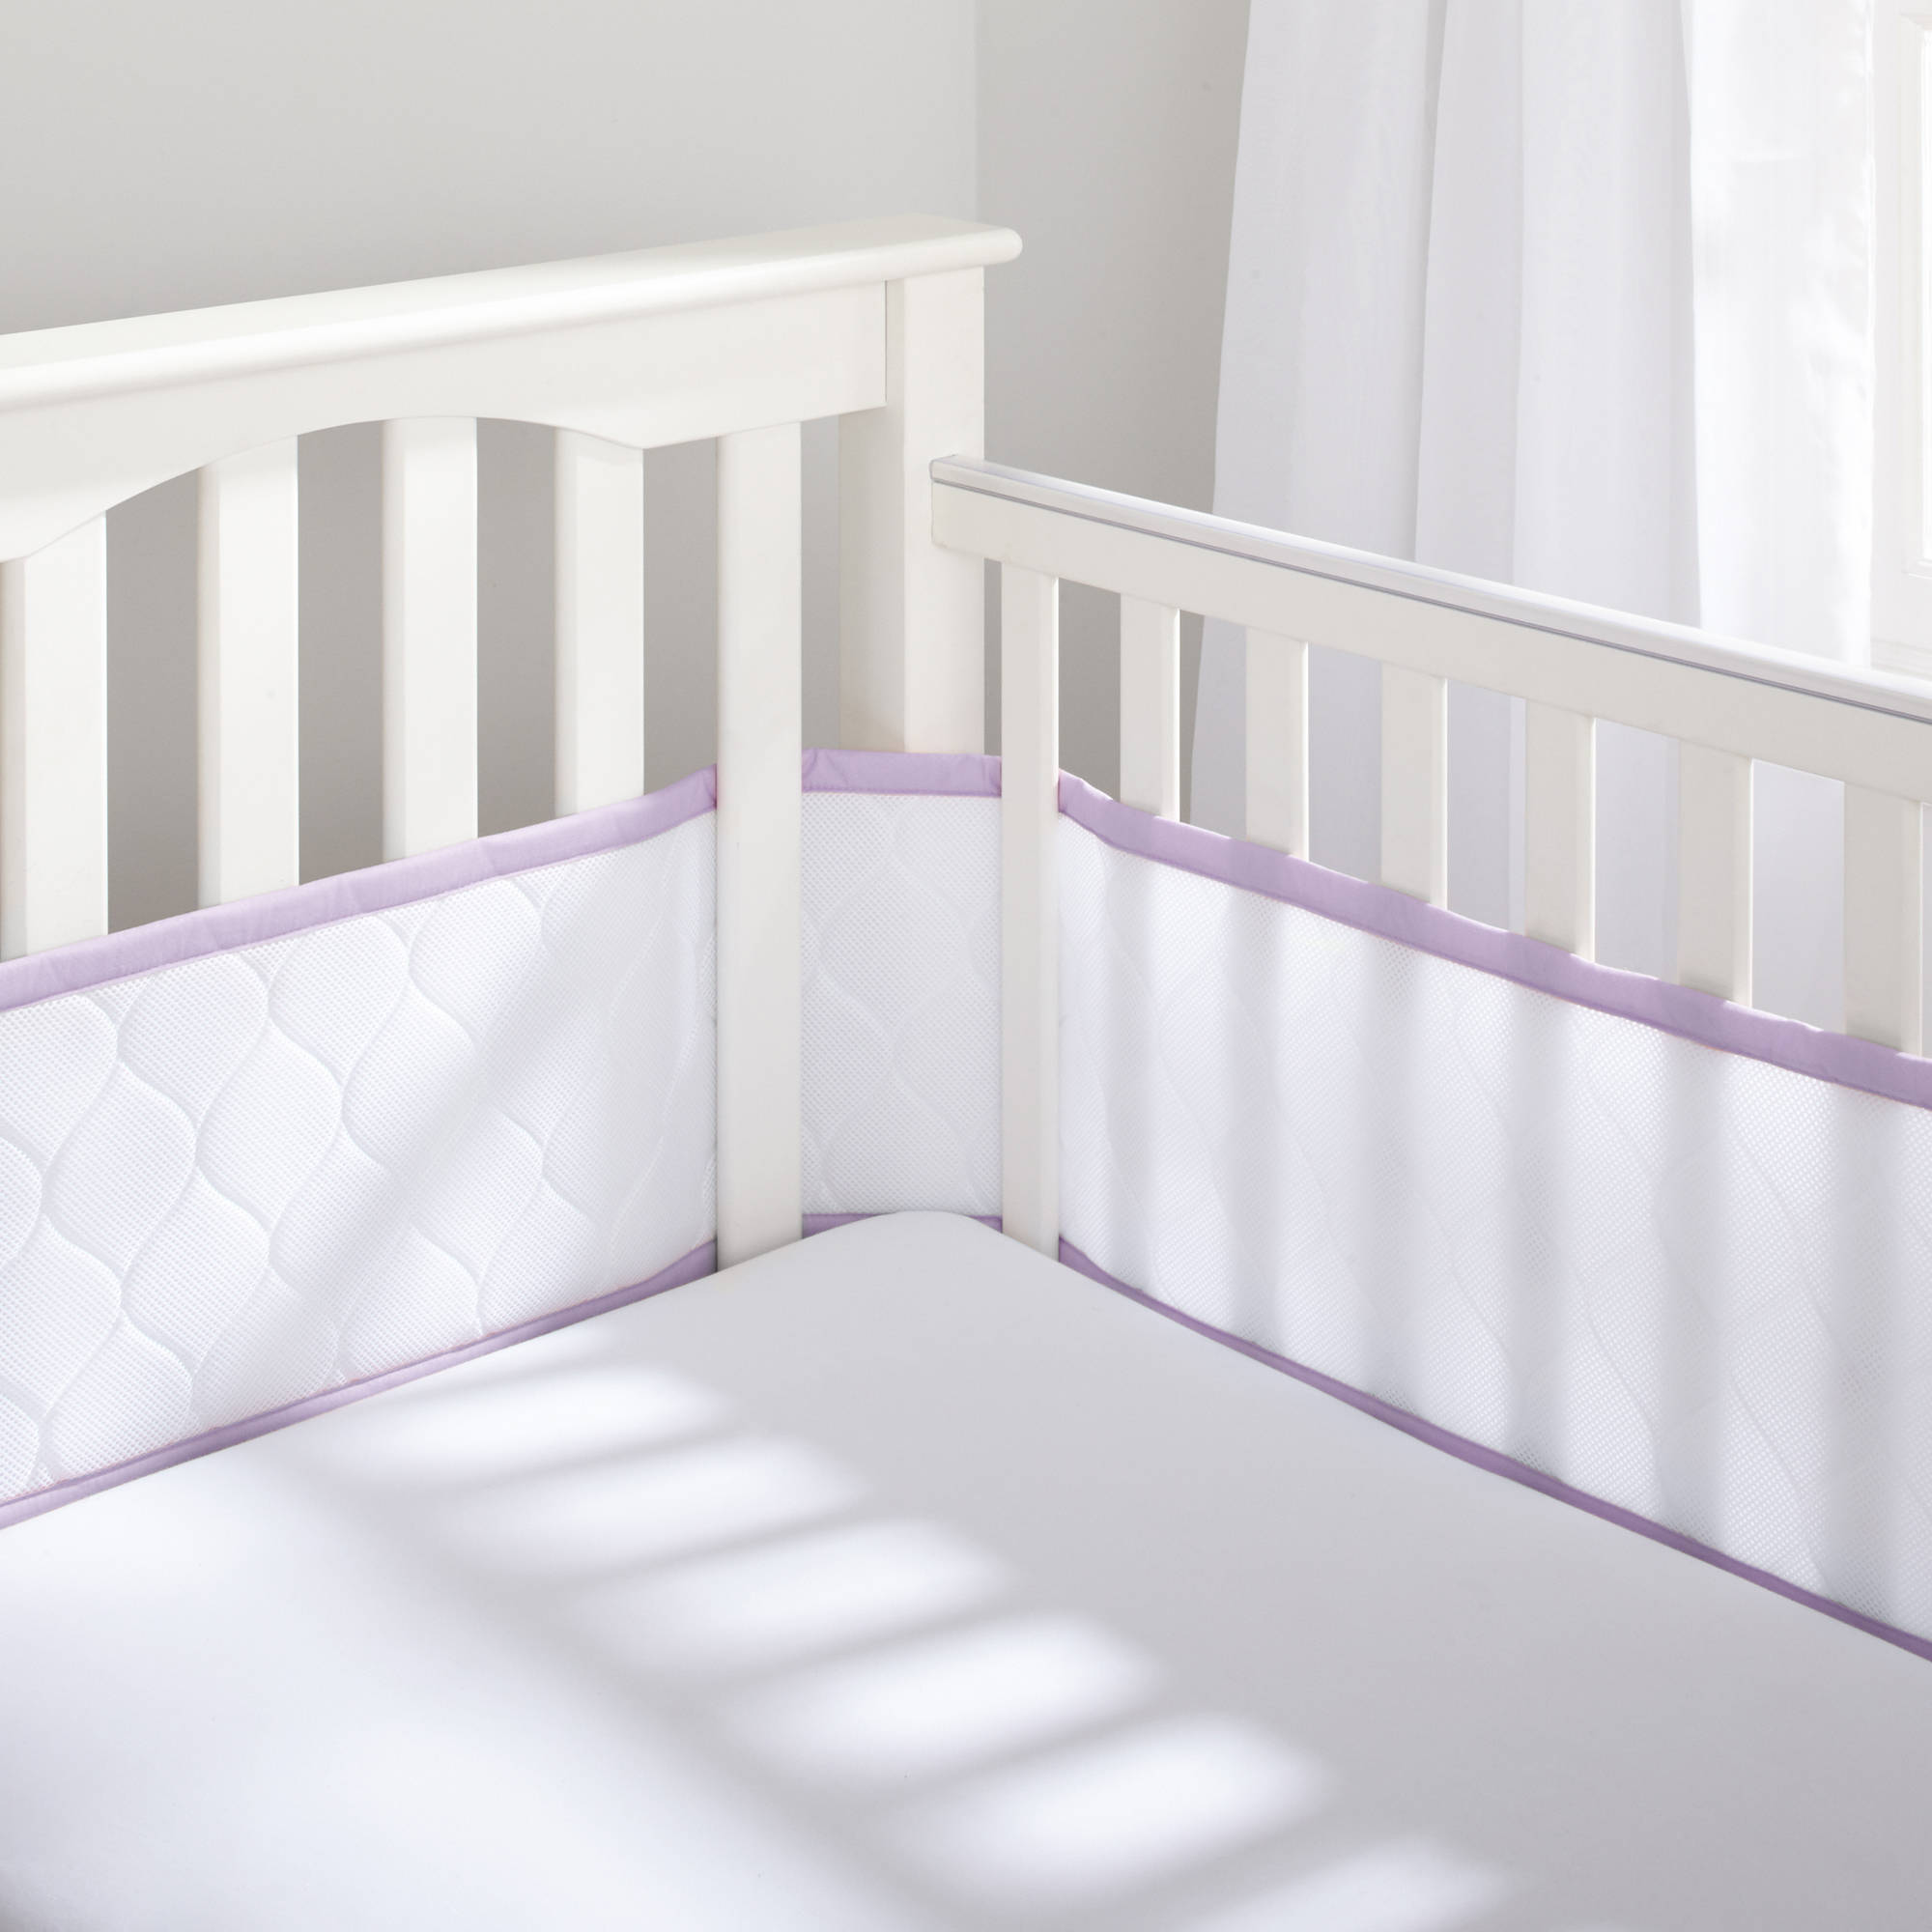 Deluxe Embossed Breathable Mesh Crib Liner, White/Lavender